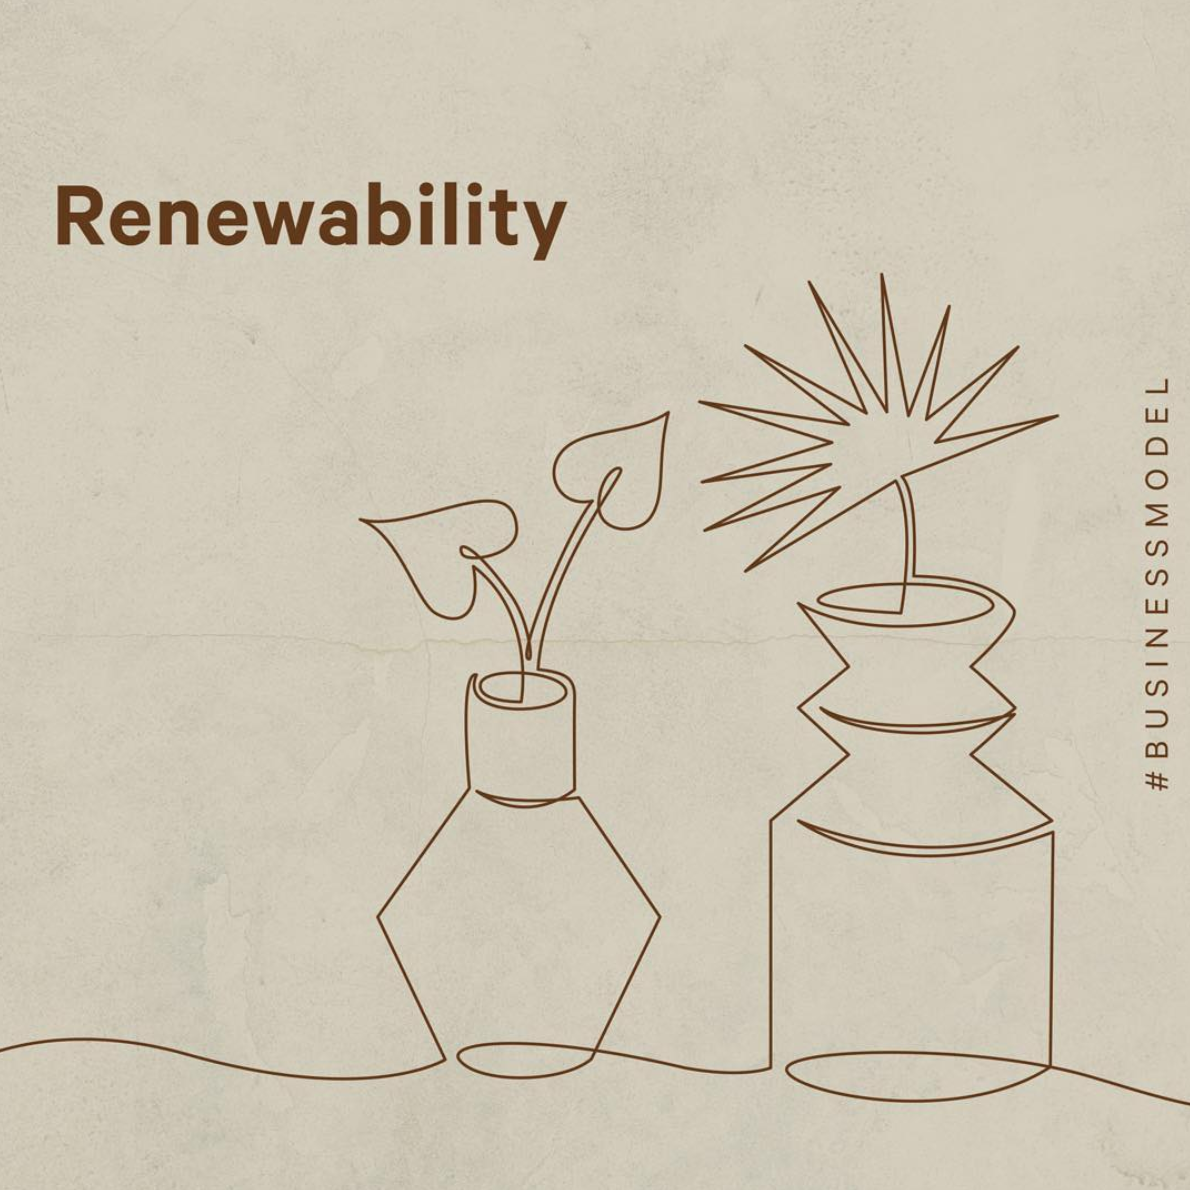 Renewability - This model invests in creating products out of recyclable and biodegrable materials in the true spirit of eco-design. Altum belongs to this category, of course! In a global survey conducted by DODGE Data & Analytics, almost half of businesses see themselves investing heavily in green building projects by 2021.